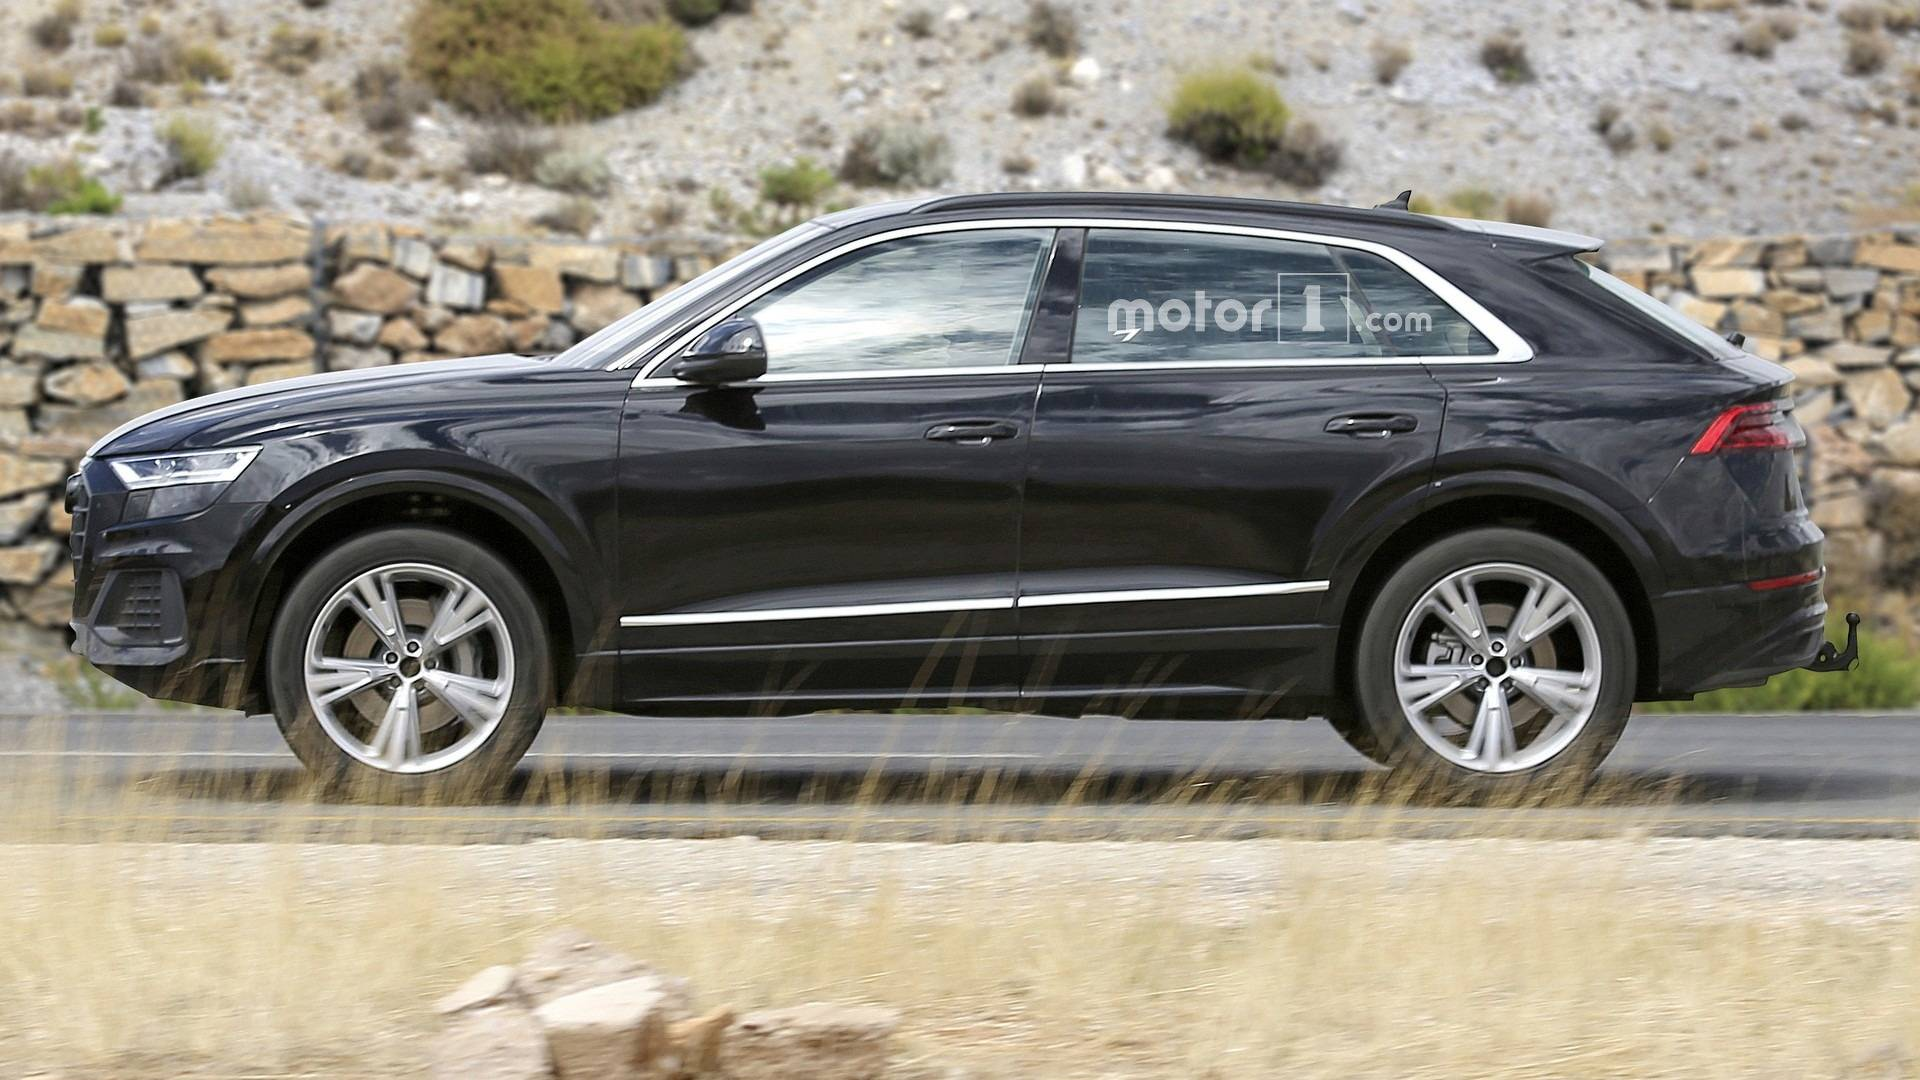 lamborghini urus audi q8 with Index Php on Index php in addition 1100728 2019 Volvo Xc40 Spy Shots And Video together with Bmw X8 A Breve La Decisione Sul Via Libera likewise First Drive 2019 Audi Q8 in addition Audi Q8.